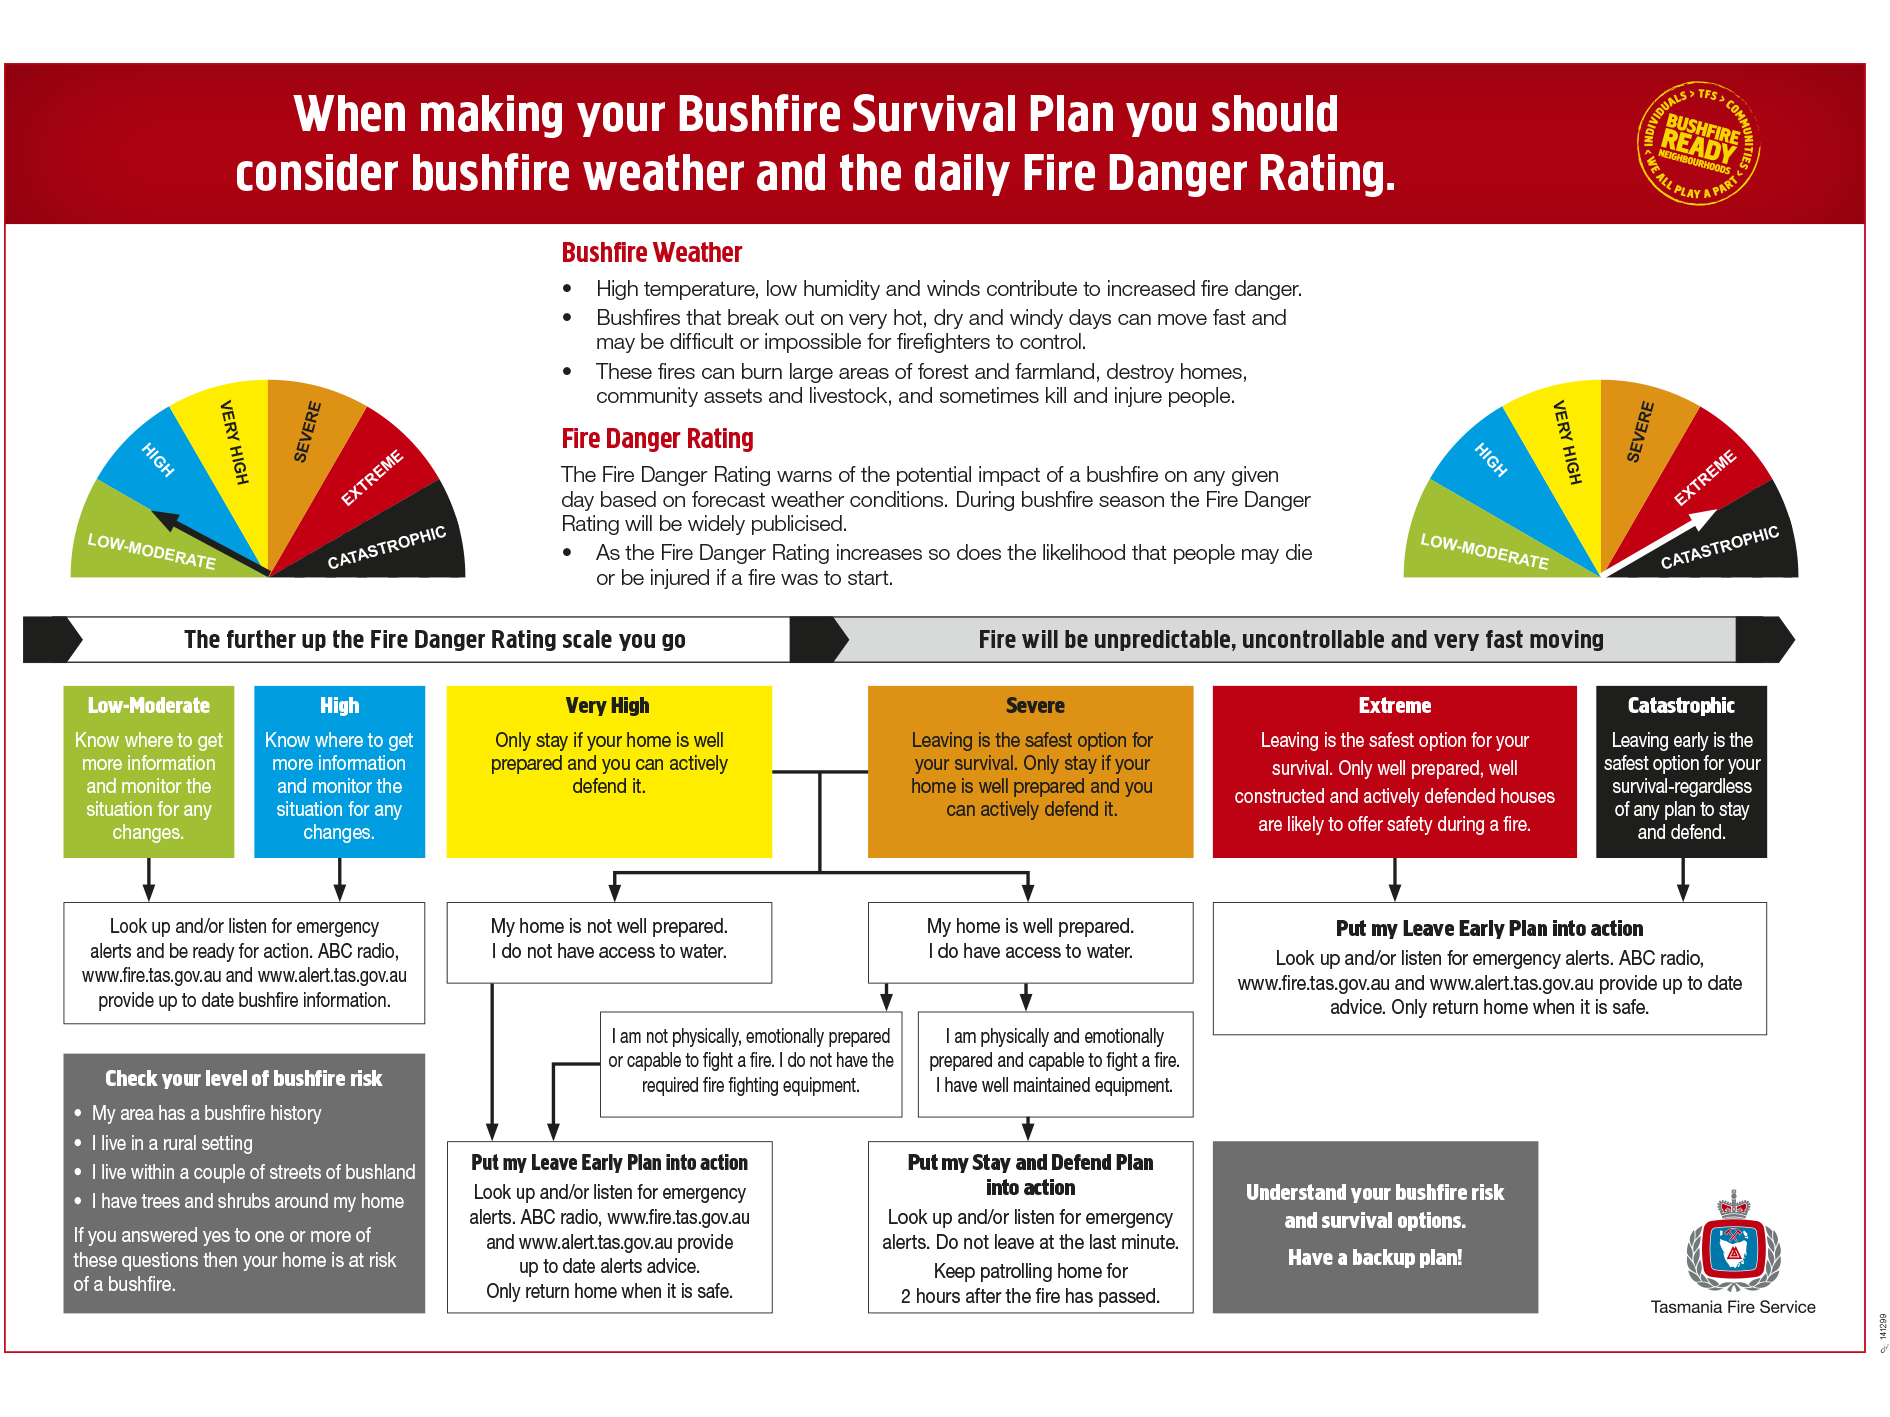 Fire Danger Rating Survival Plan Flowchart